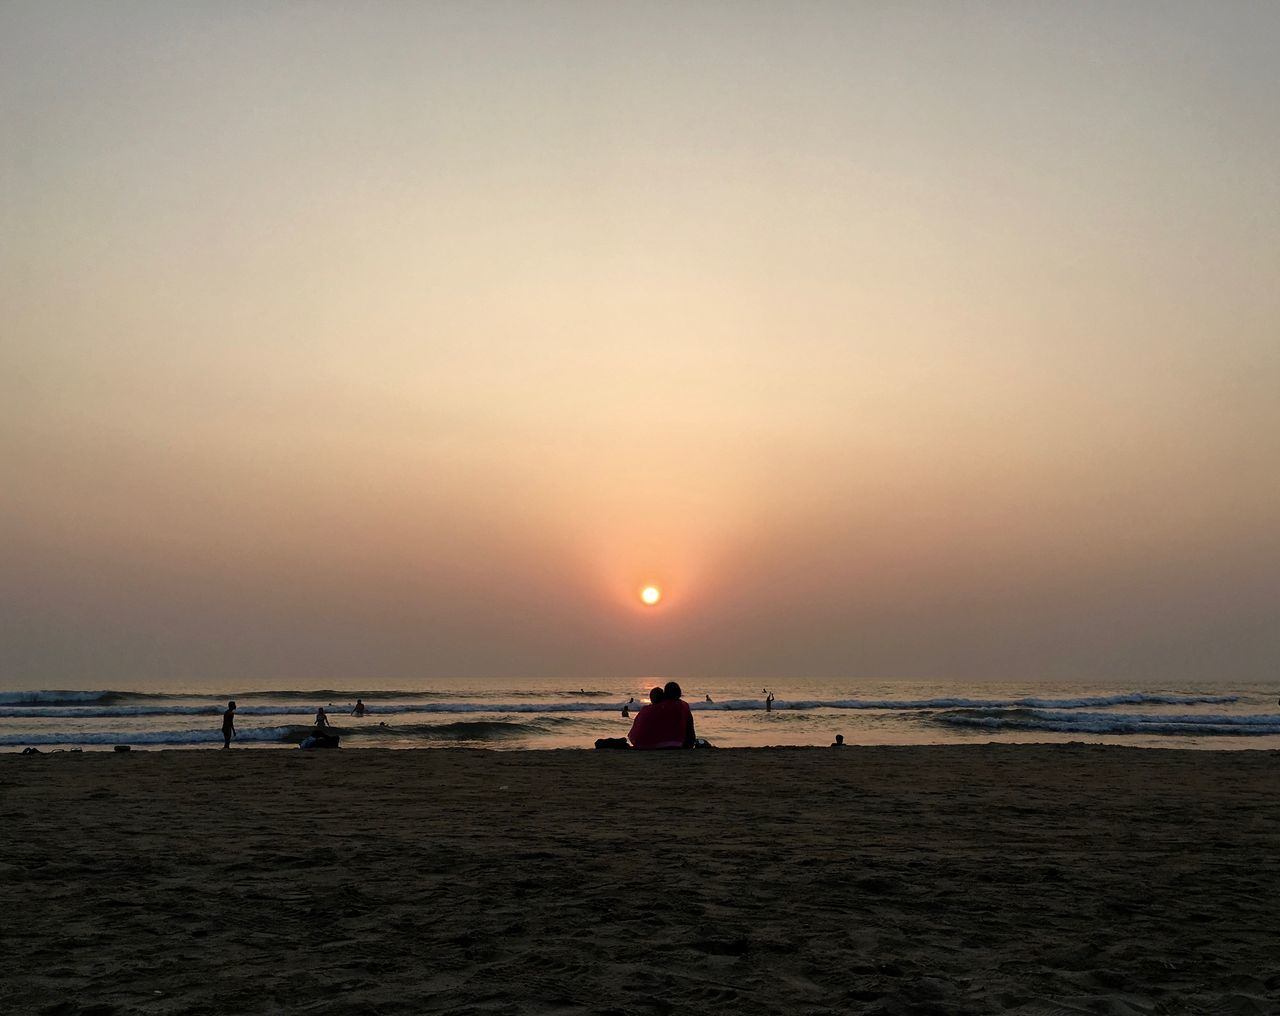 Goa Love Arambol Arambol Beach Goa Beach Beauty In Nature Countryside Goa Horizon Over Water Idyllic Love Low Angle View Nature Outdoors People Scenics Sea Sun Sunset Two People Unrecognizable People Vacations Watching The Sunset Water